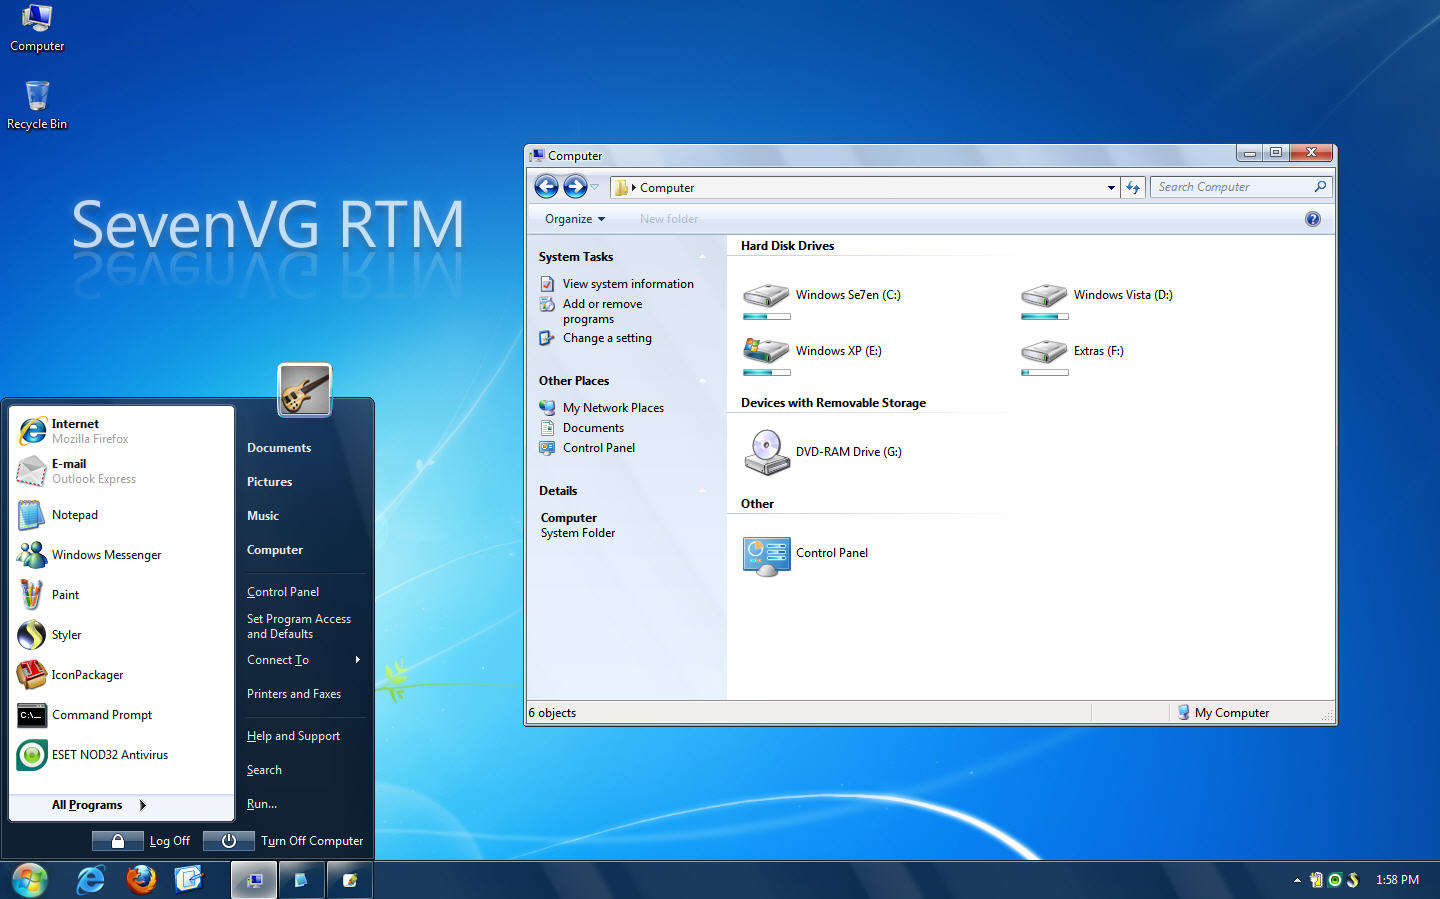 SevenVG RTM Windows 7 Theme가 XP에 설치된 모습